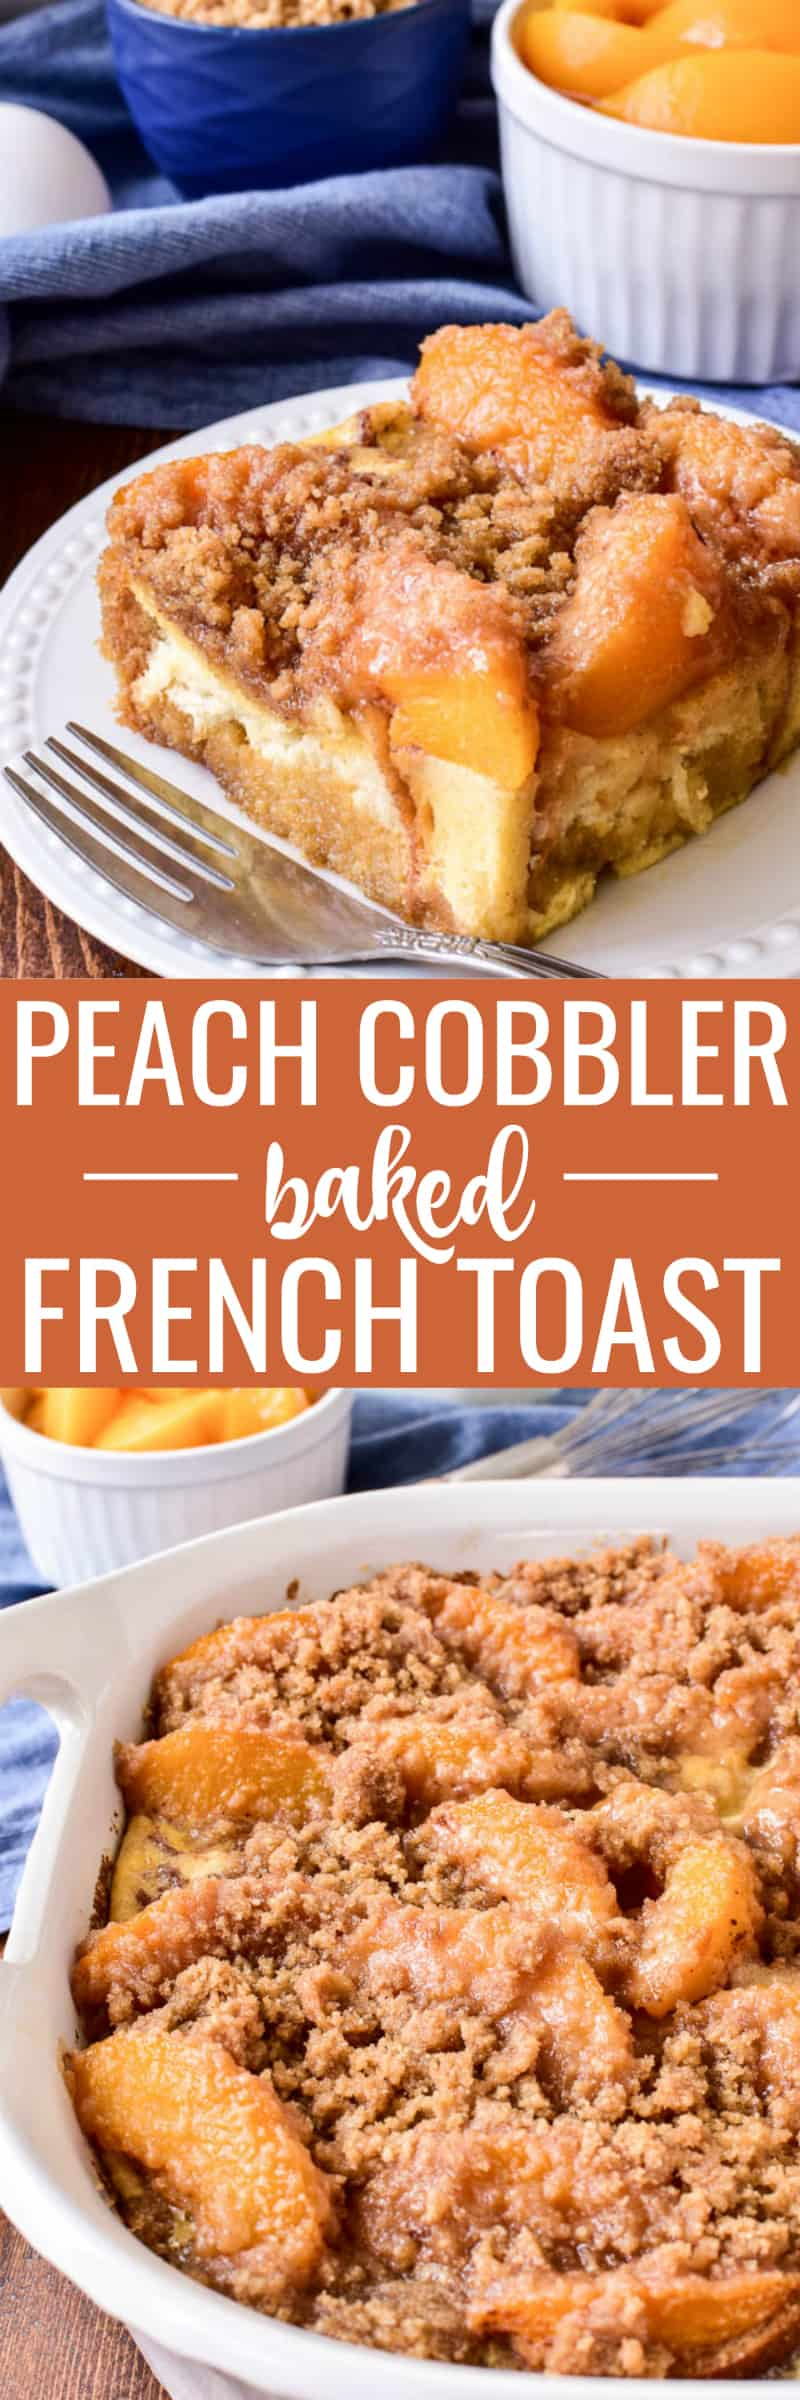 Peach Cobbler Baked French Toast is one of our family's go-to breakfast recipes. It has all the flavors of peach cobbler in a delicious overnight French toast casserole that's perfect for weekends or special occasions. This recipe is easy to prepare and oven-ready in the morning. Take the stress out of breakfast with this delicious twist on a classic....guaranteed to become a favorite!